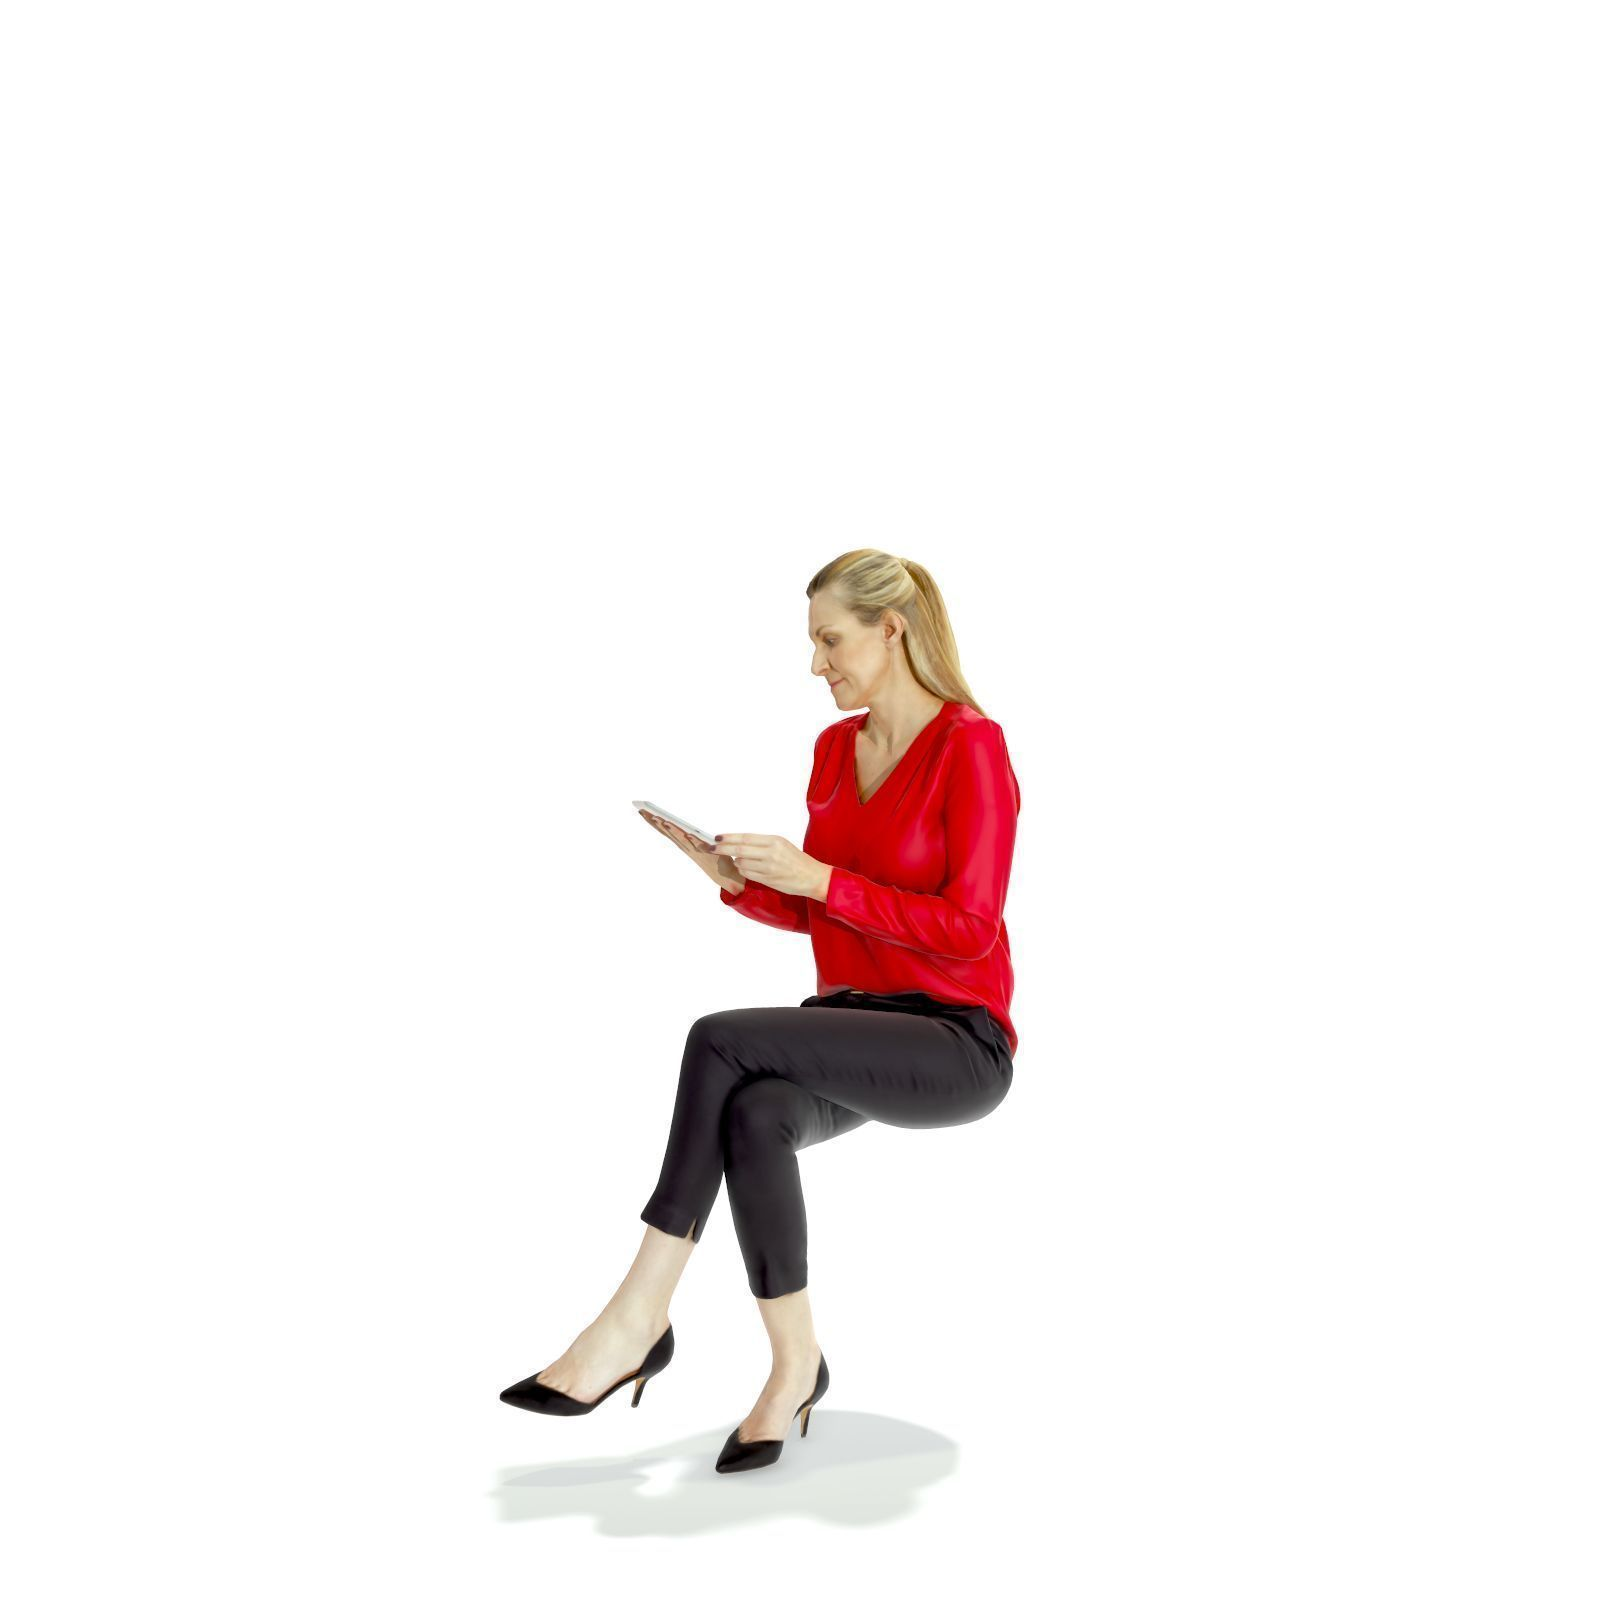 Sitting Business Woman With Tablet Bwom0318 Hd2 O01p01 S 3d Model Render People People Png Vector Illustration People